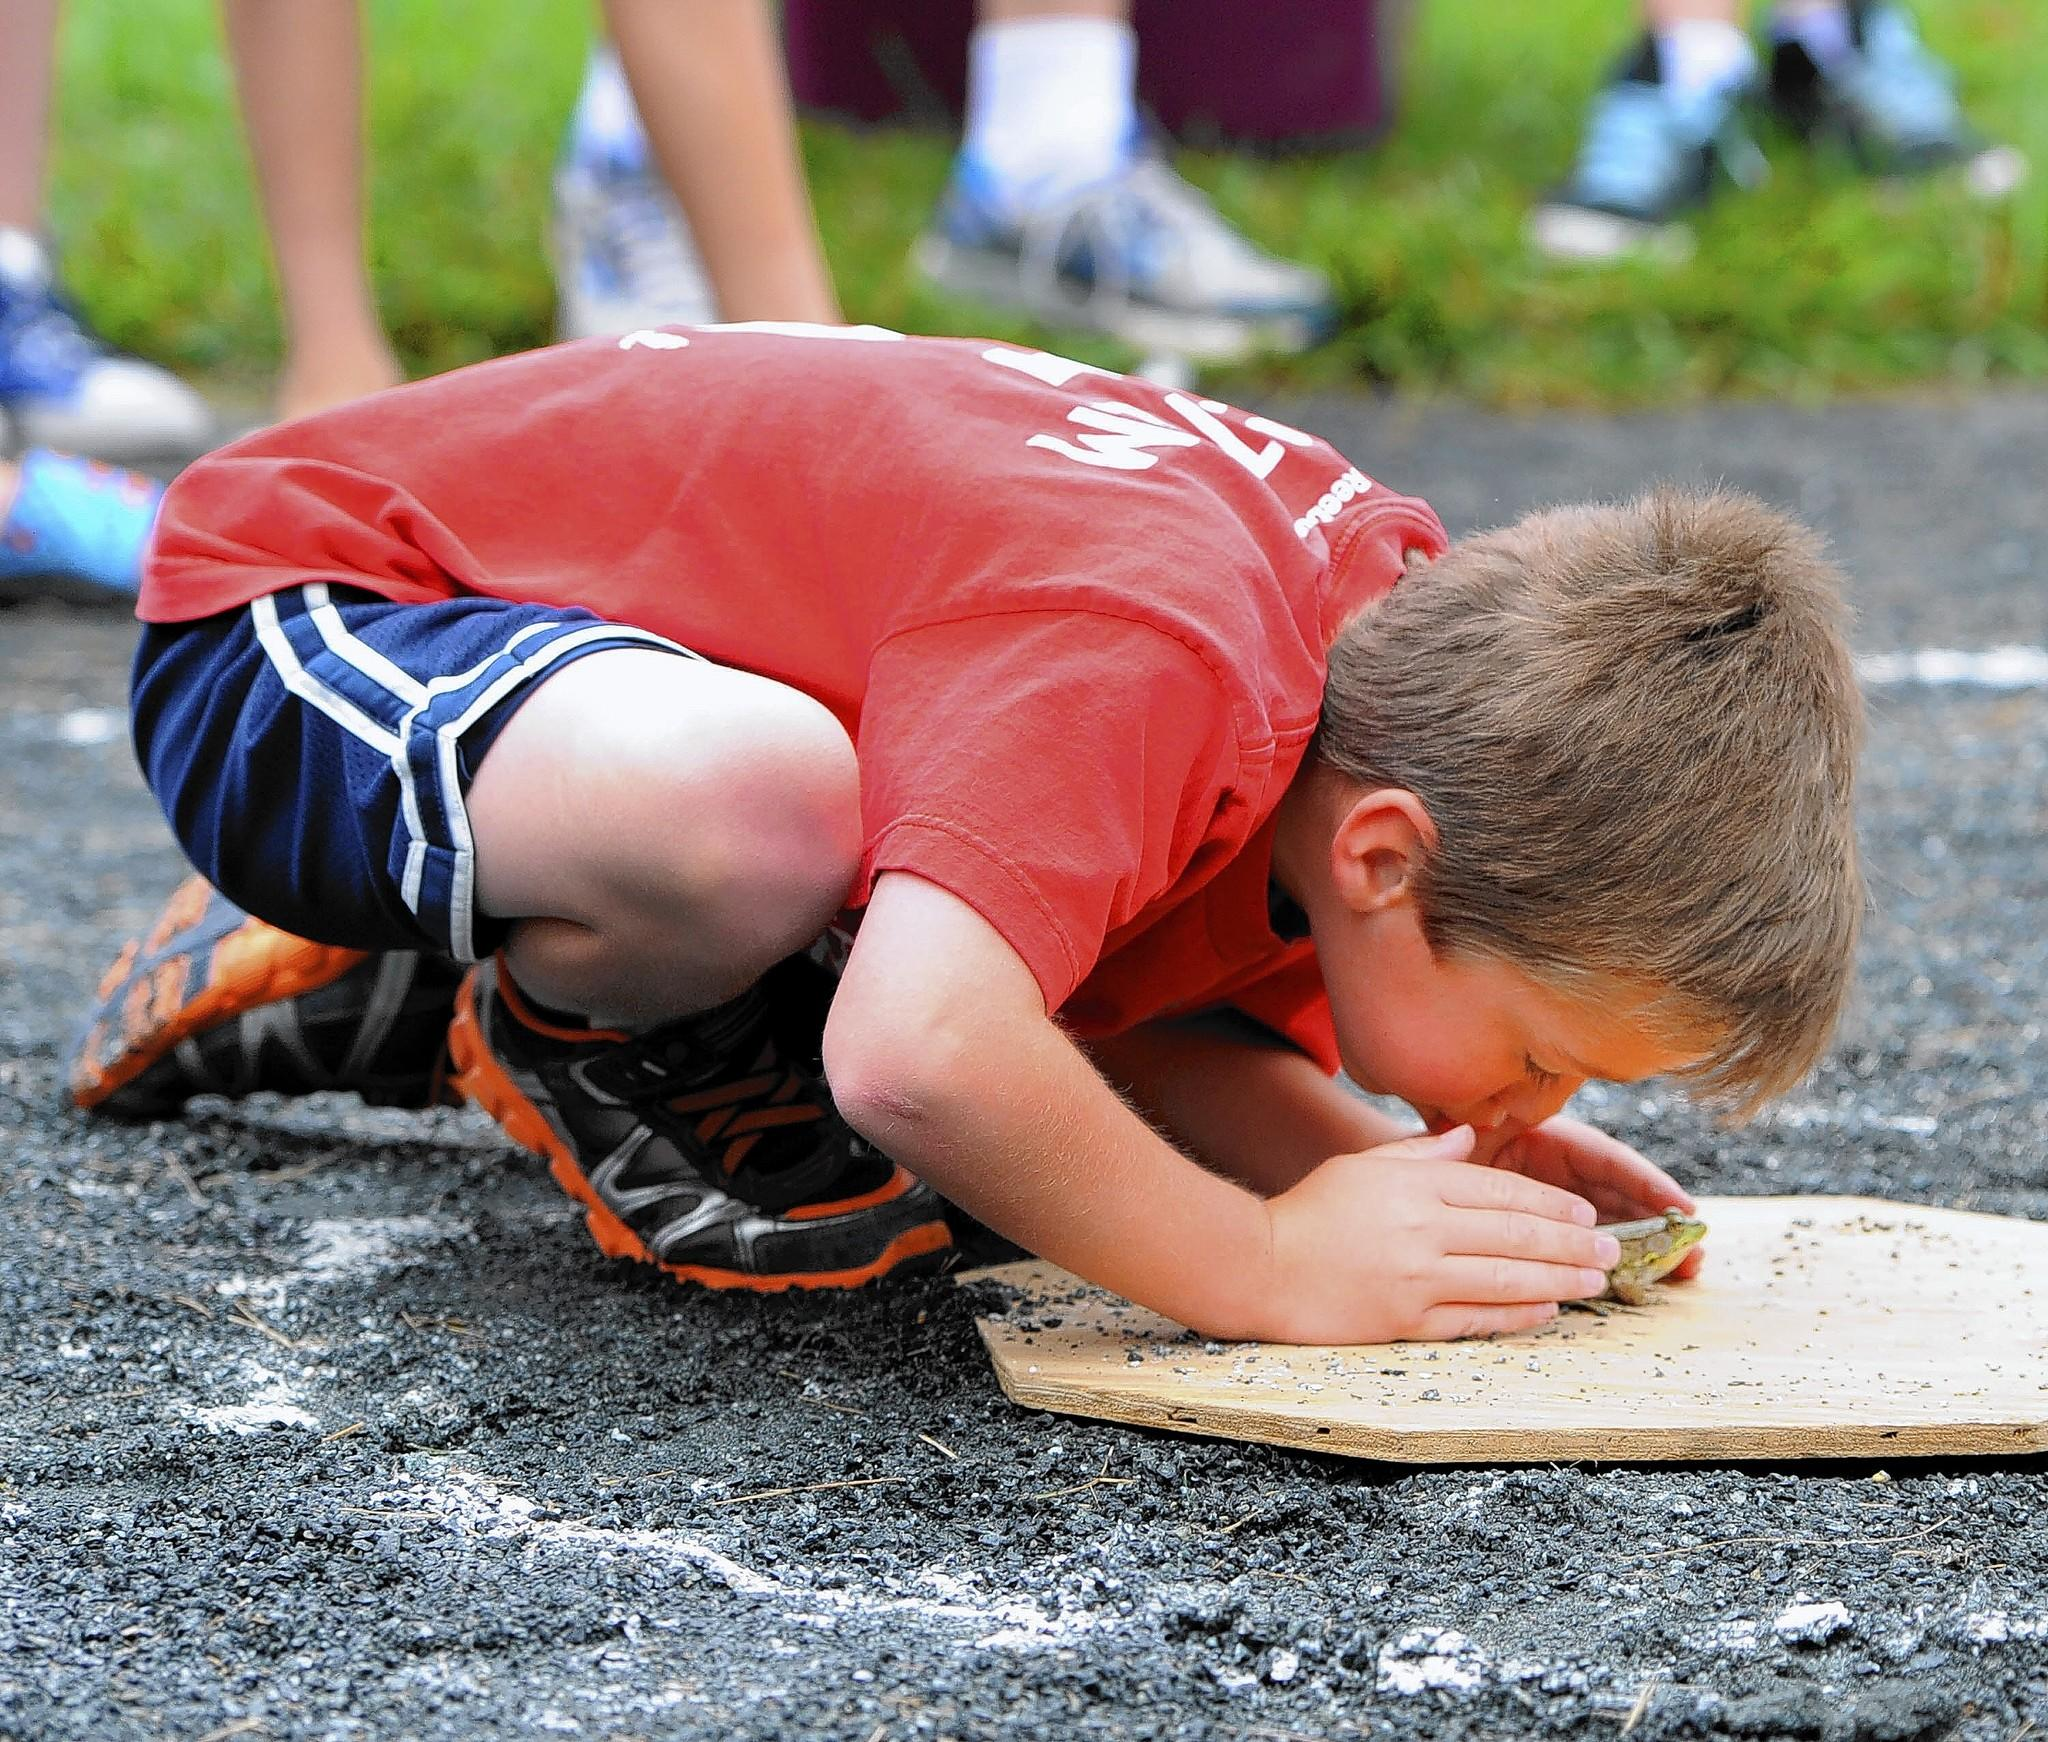 Ben Shramek of Forest Hill remains calm and tries to encourage his frog to take a hop as they compete in the great Bel Air Frog Jumping contest at Shamrock Park as part of Bel AIr's July Fourth morning events.